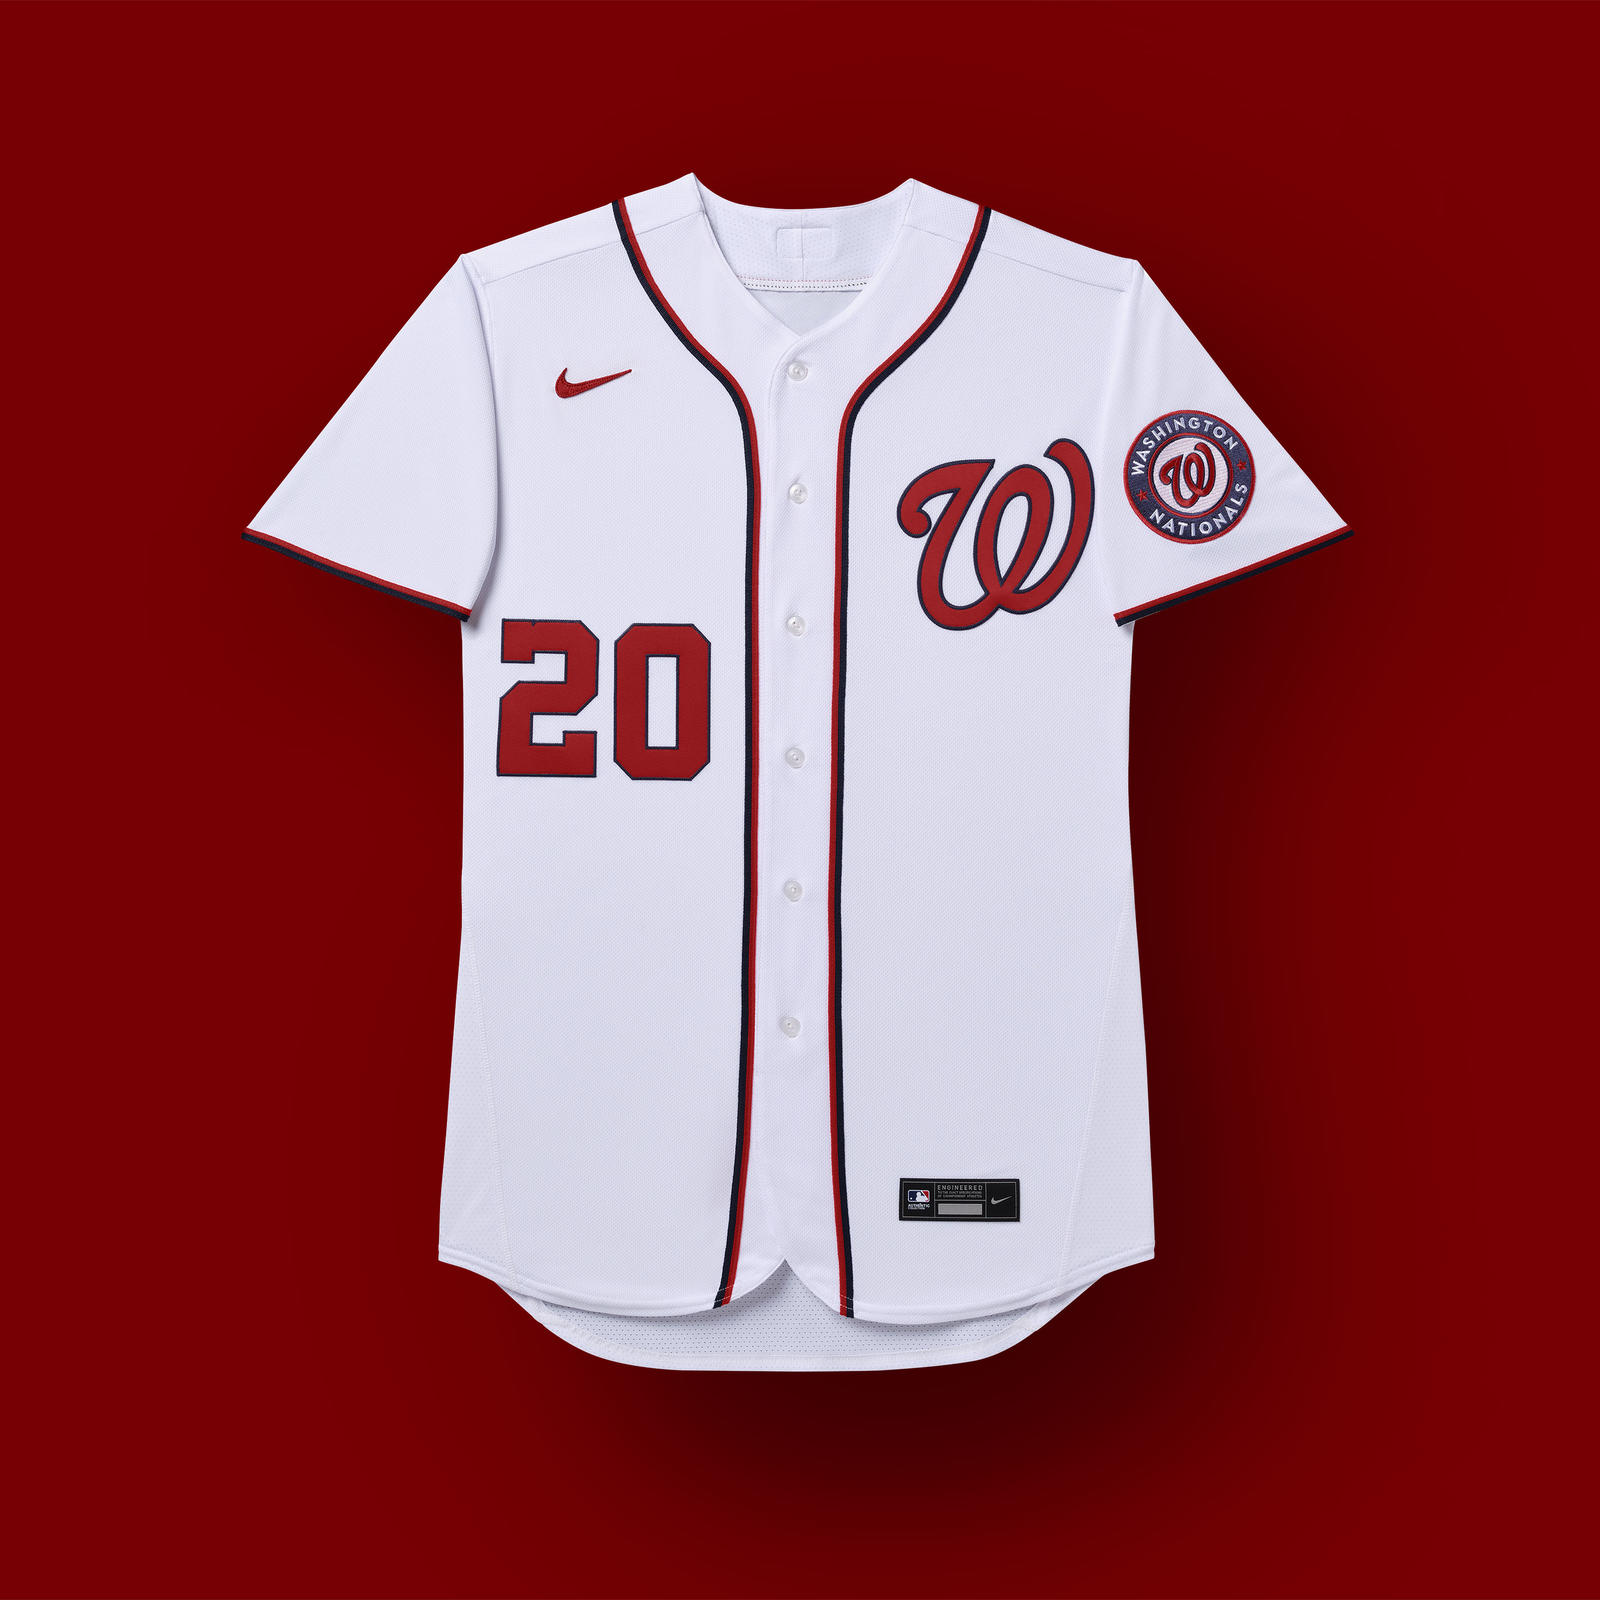 Nike x Major League Baseball Uniforms 2020 Official Images 30